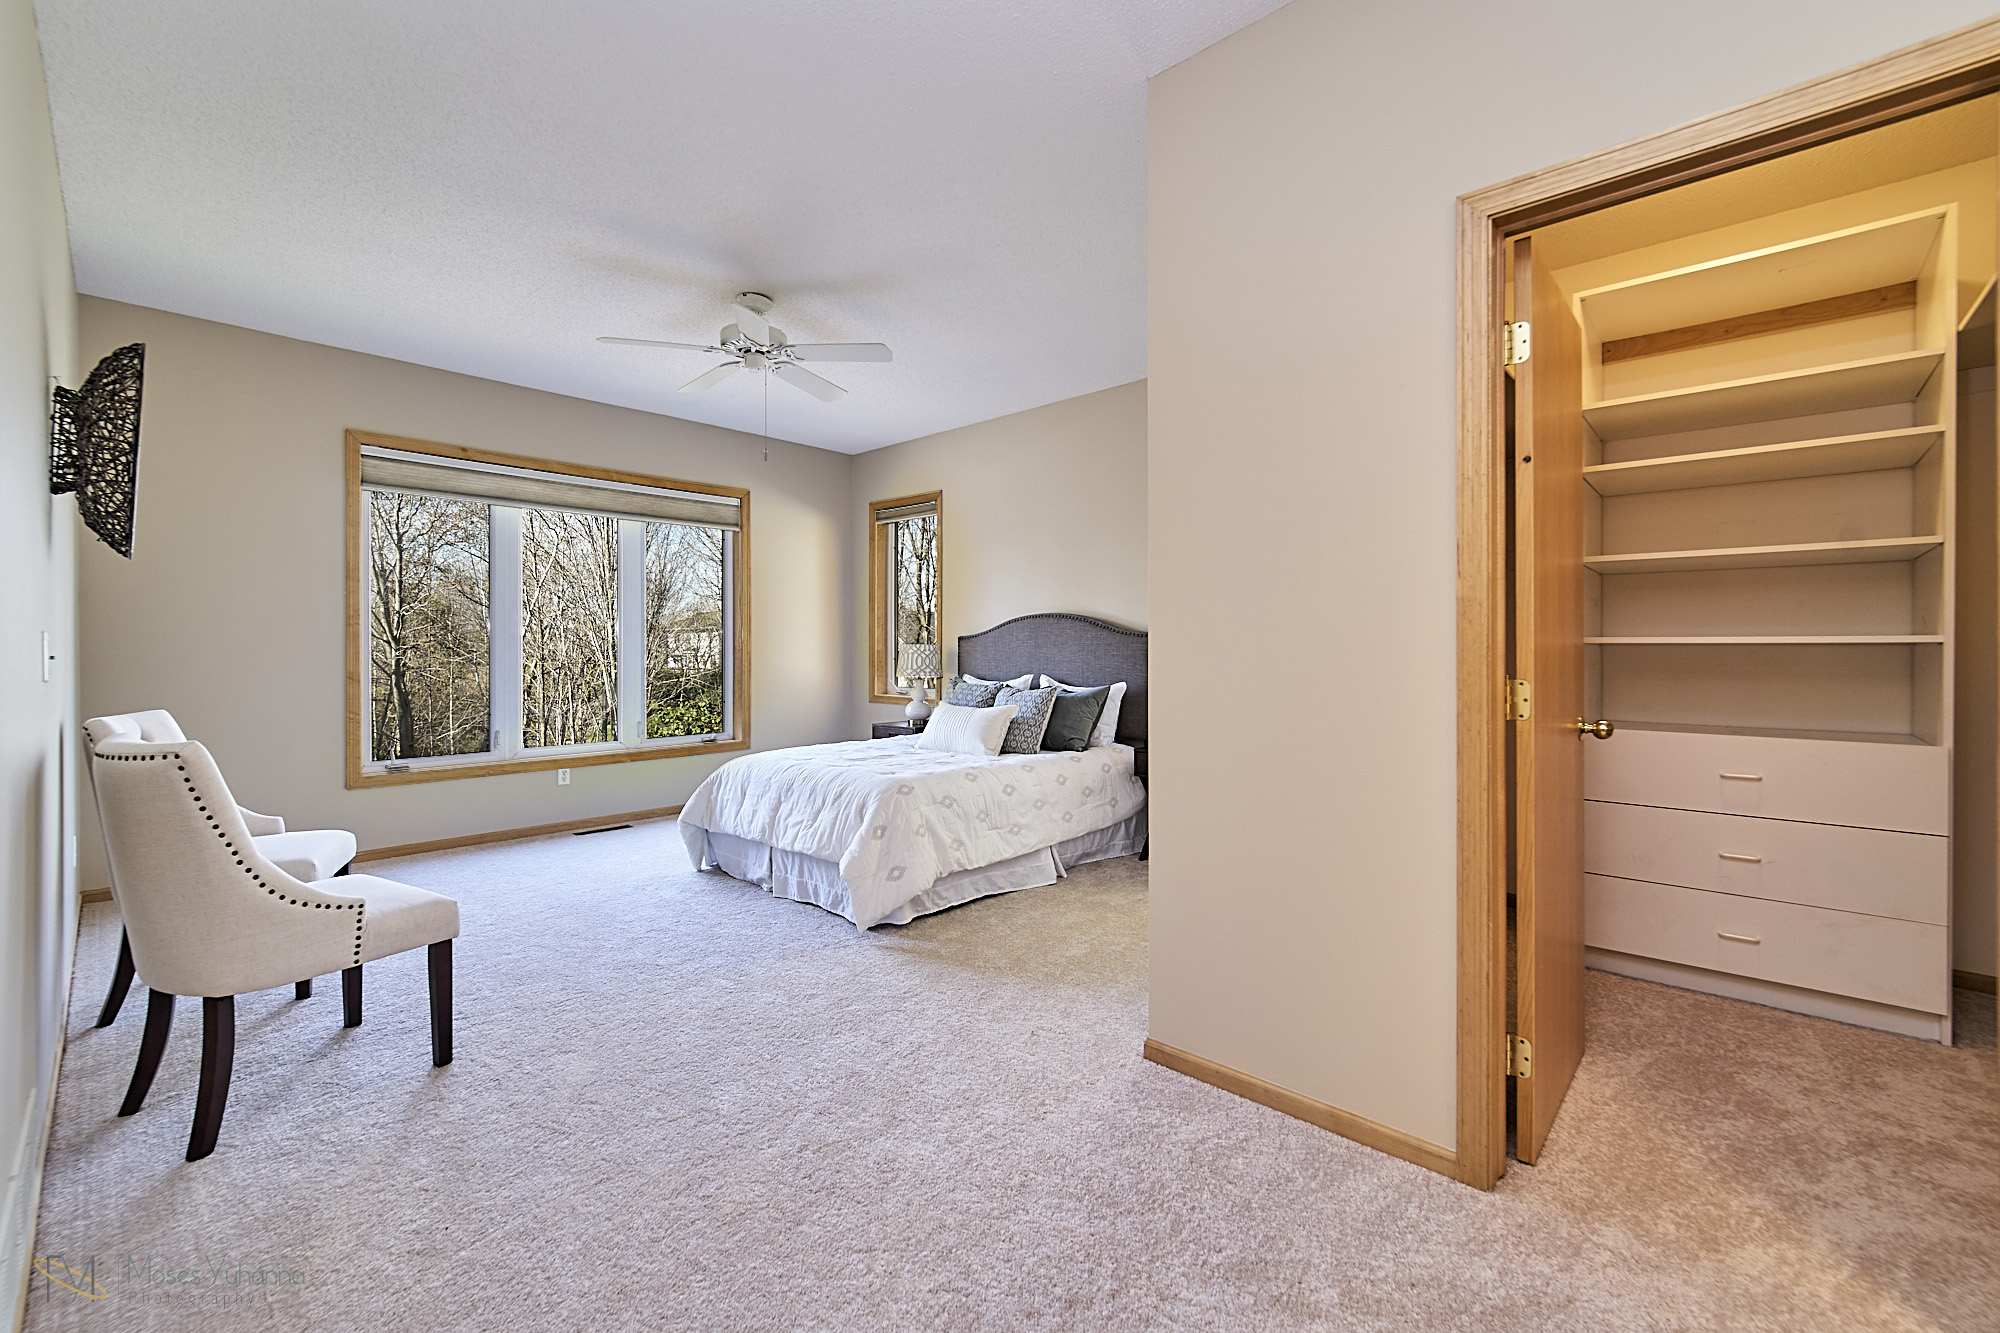 13770-Cottonwood-St-NW-Andover 13 MR BR.jpg